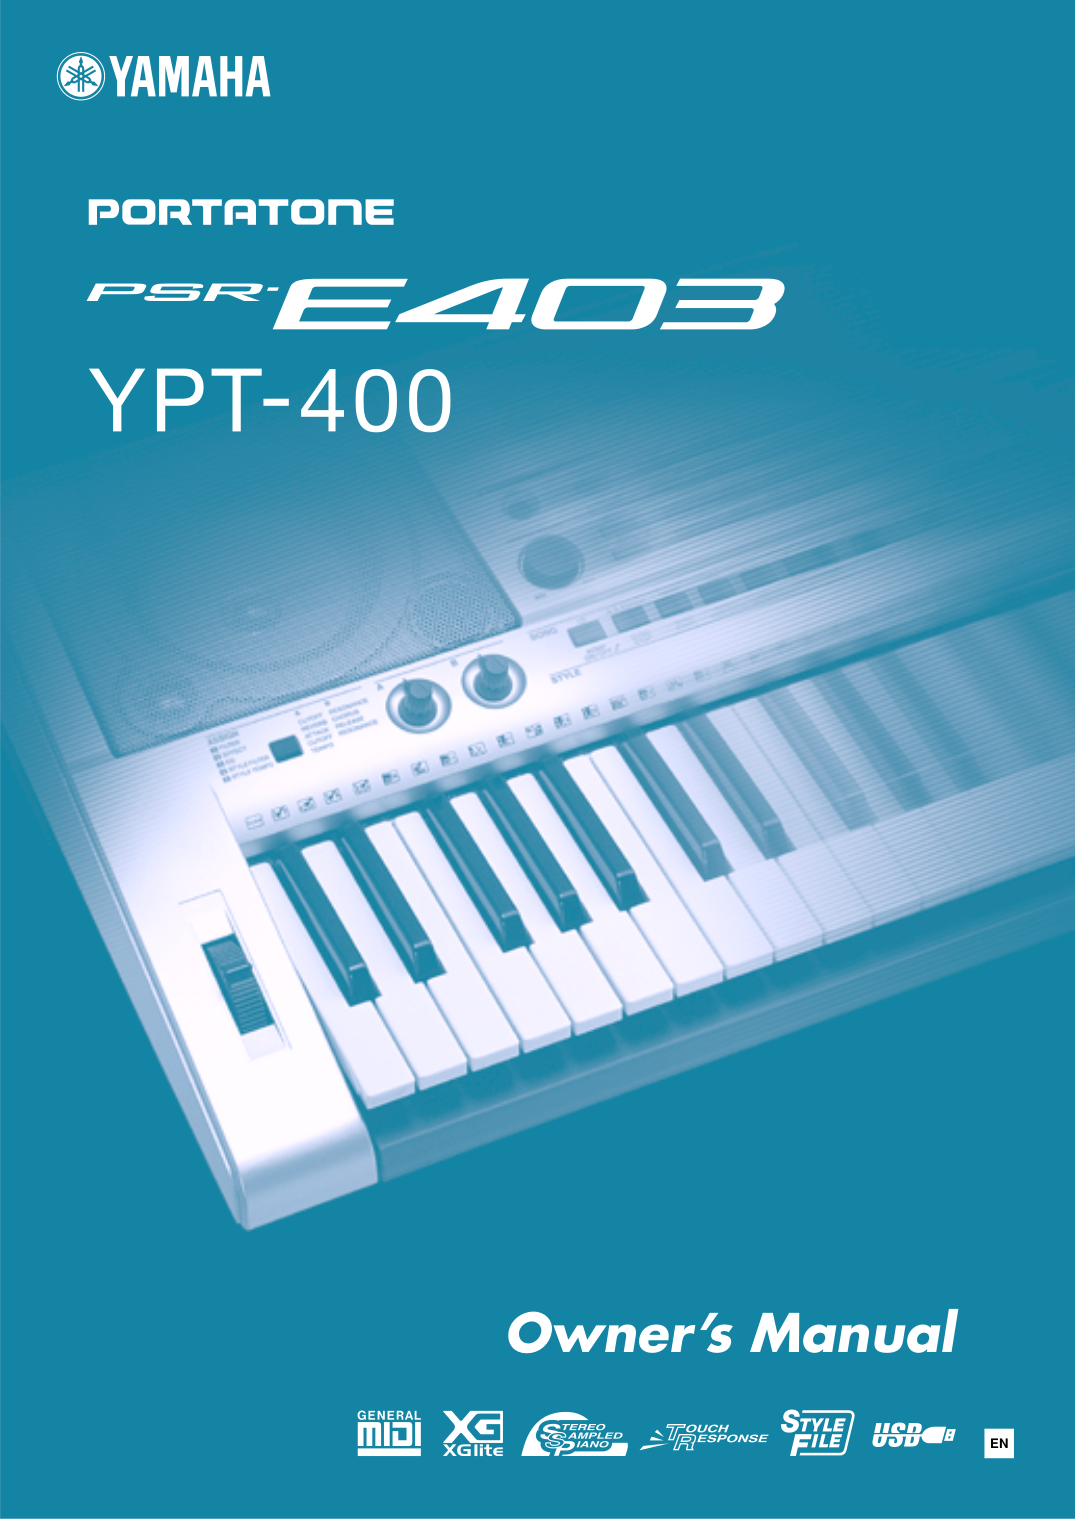 download free pdf for yamaha psr 220 music keyboard manual rh umlib com yamaha psr 220 manual pdf free yamaha psr-220 user manual